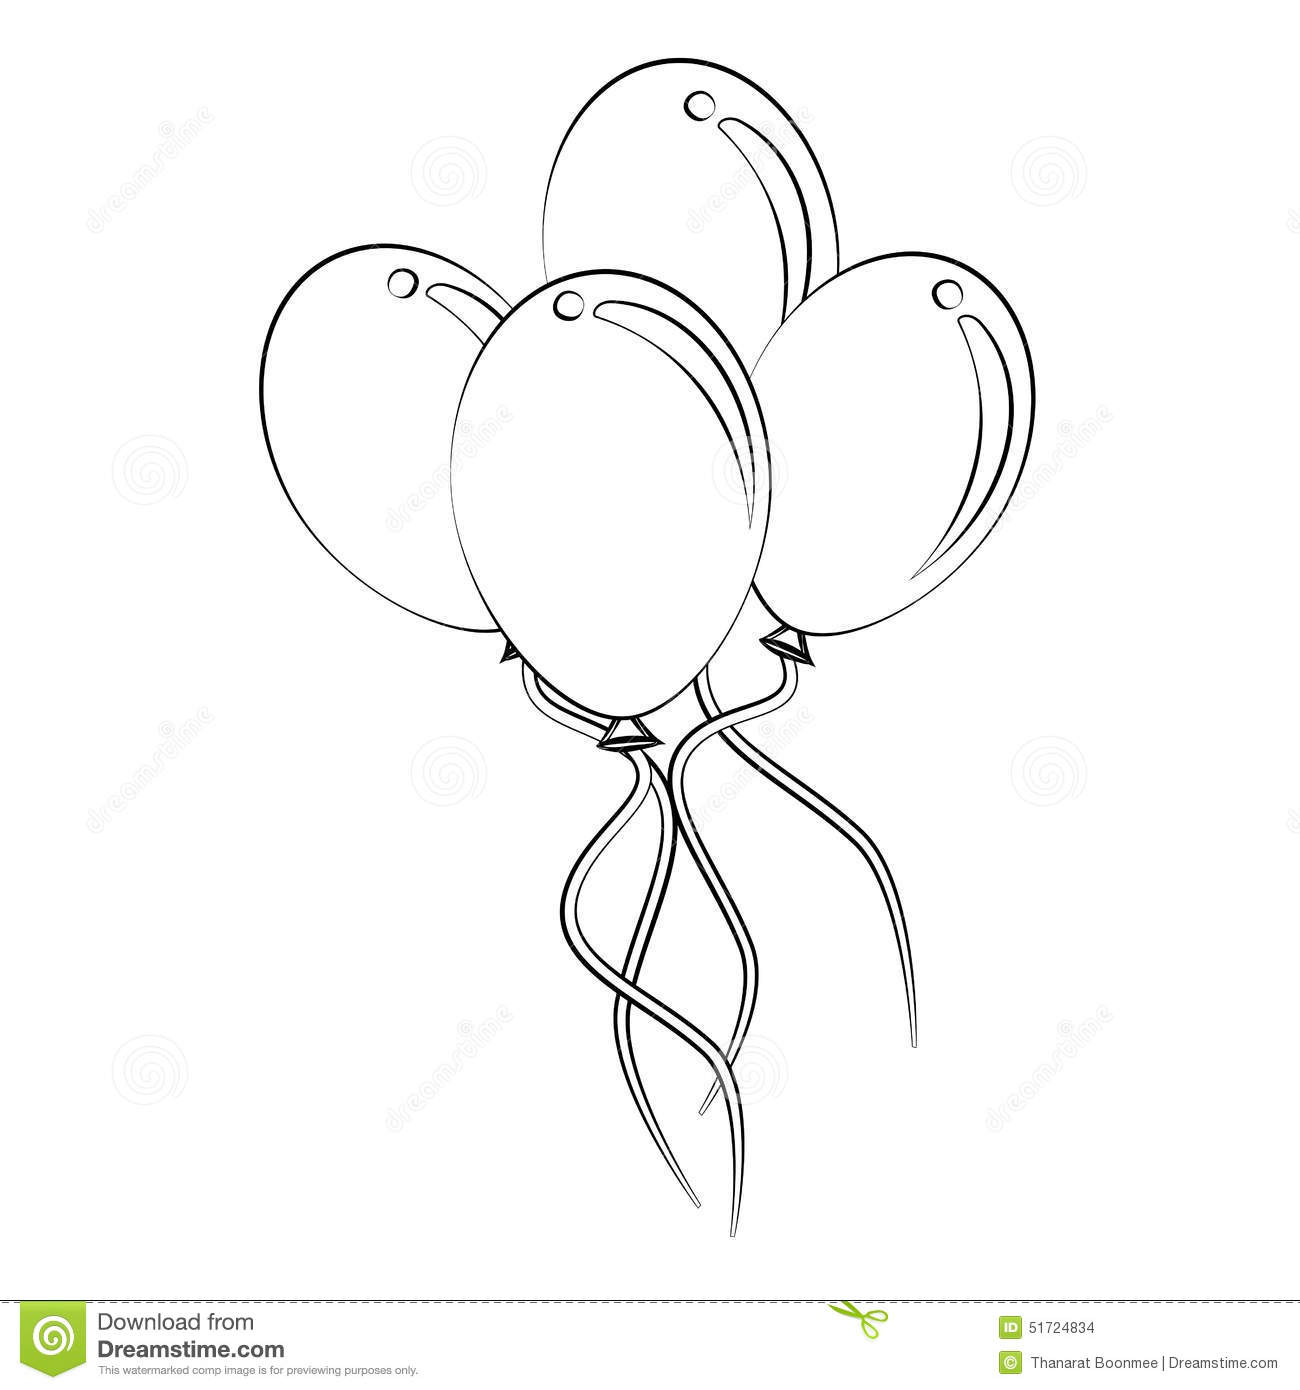 dolphin helicopter with Stock Illustration Balloon Black Outline Vector White Background Image51724834 on Port Information together with 31576 Soldier Photos besides Rocket 1 besides Watch additionally Opinion Just Kill The Damn Sharks.